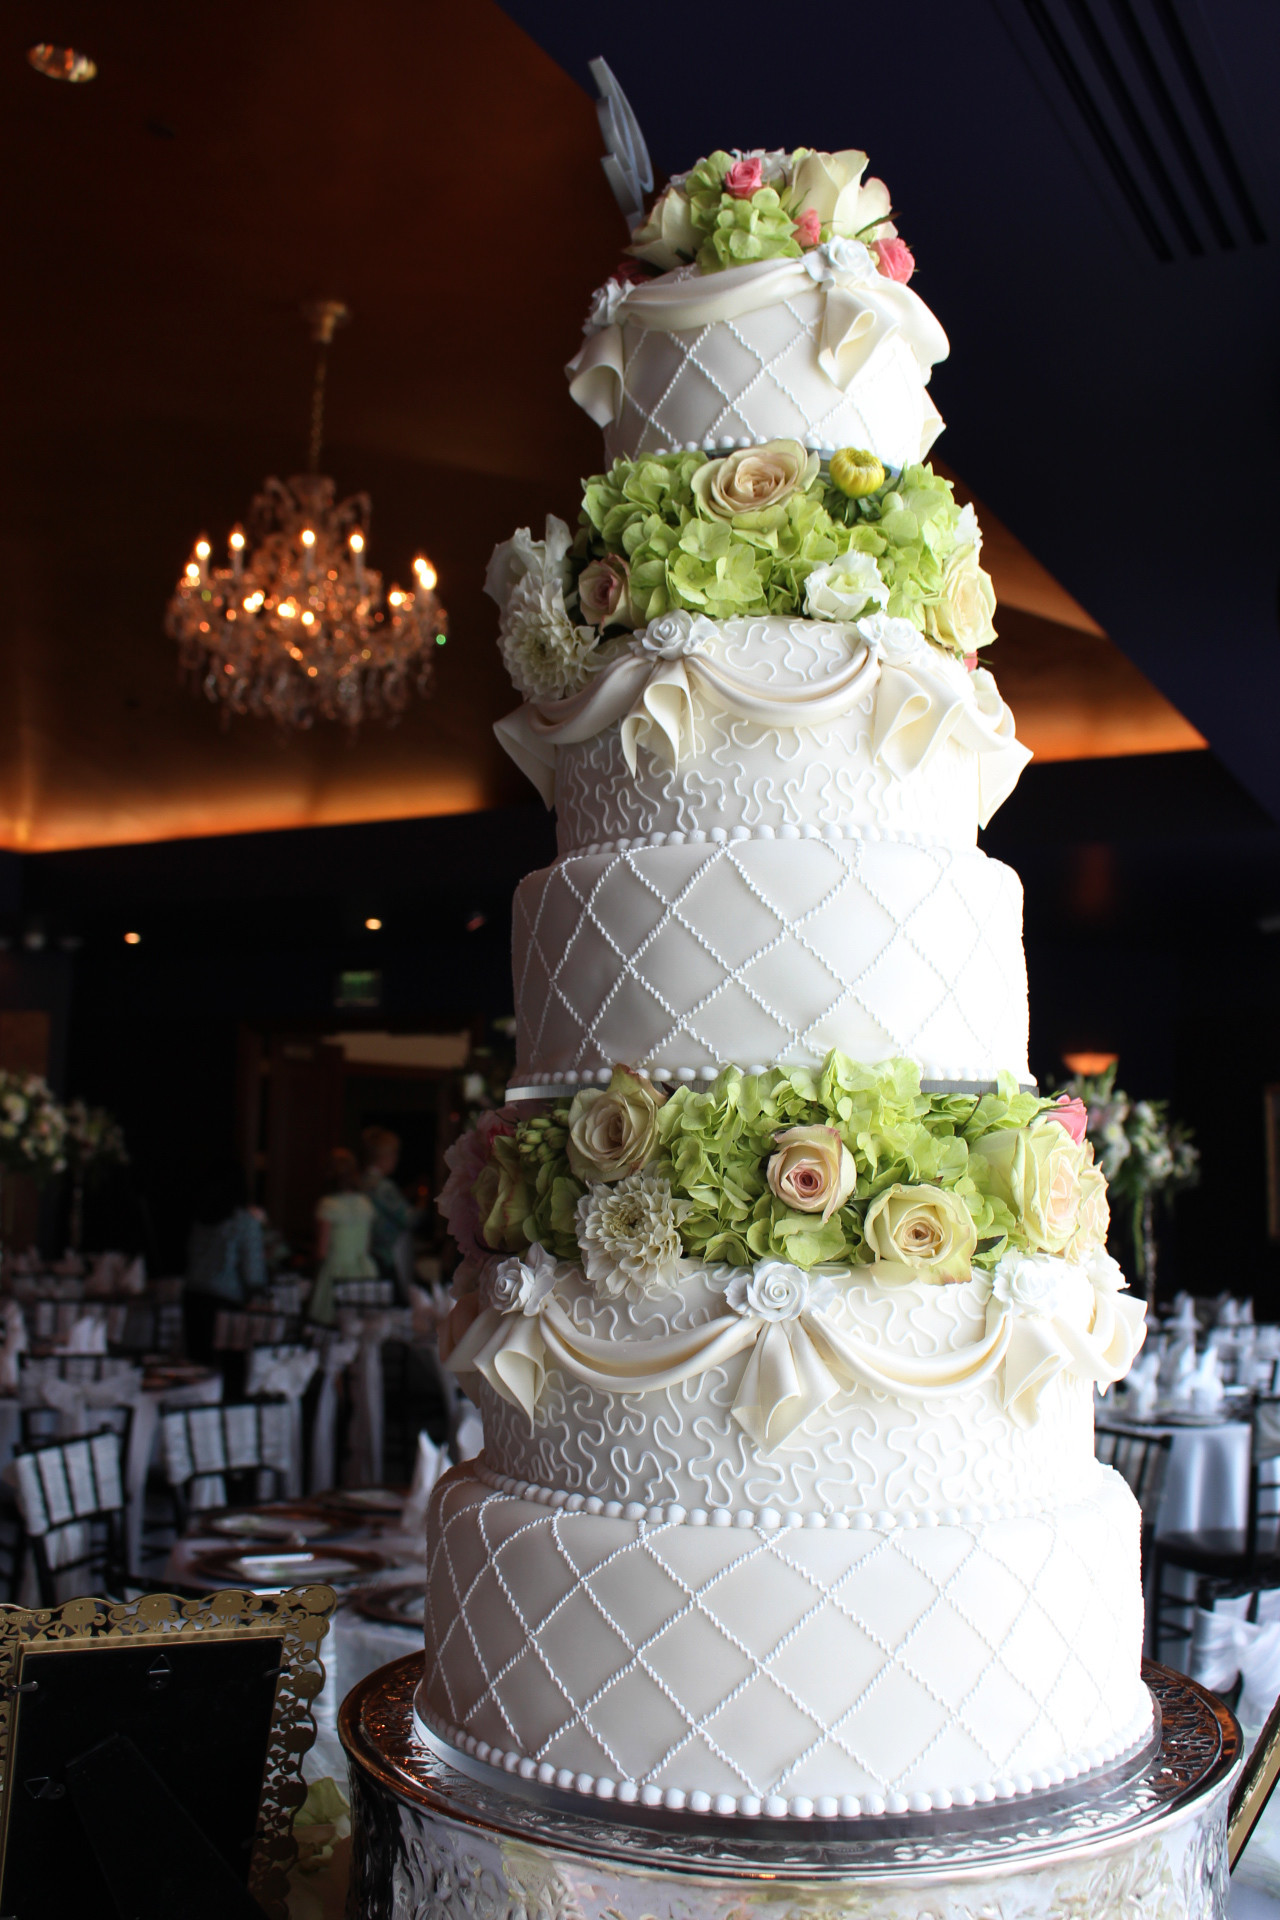 Tiered Wedding Cakes  Best Ways to Use Fresh Flowers on your Wedding Cake